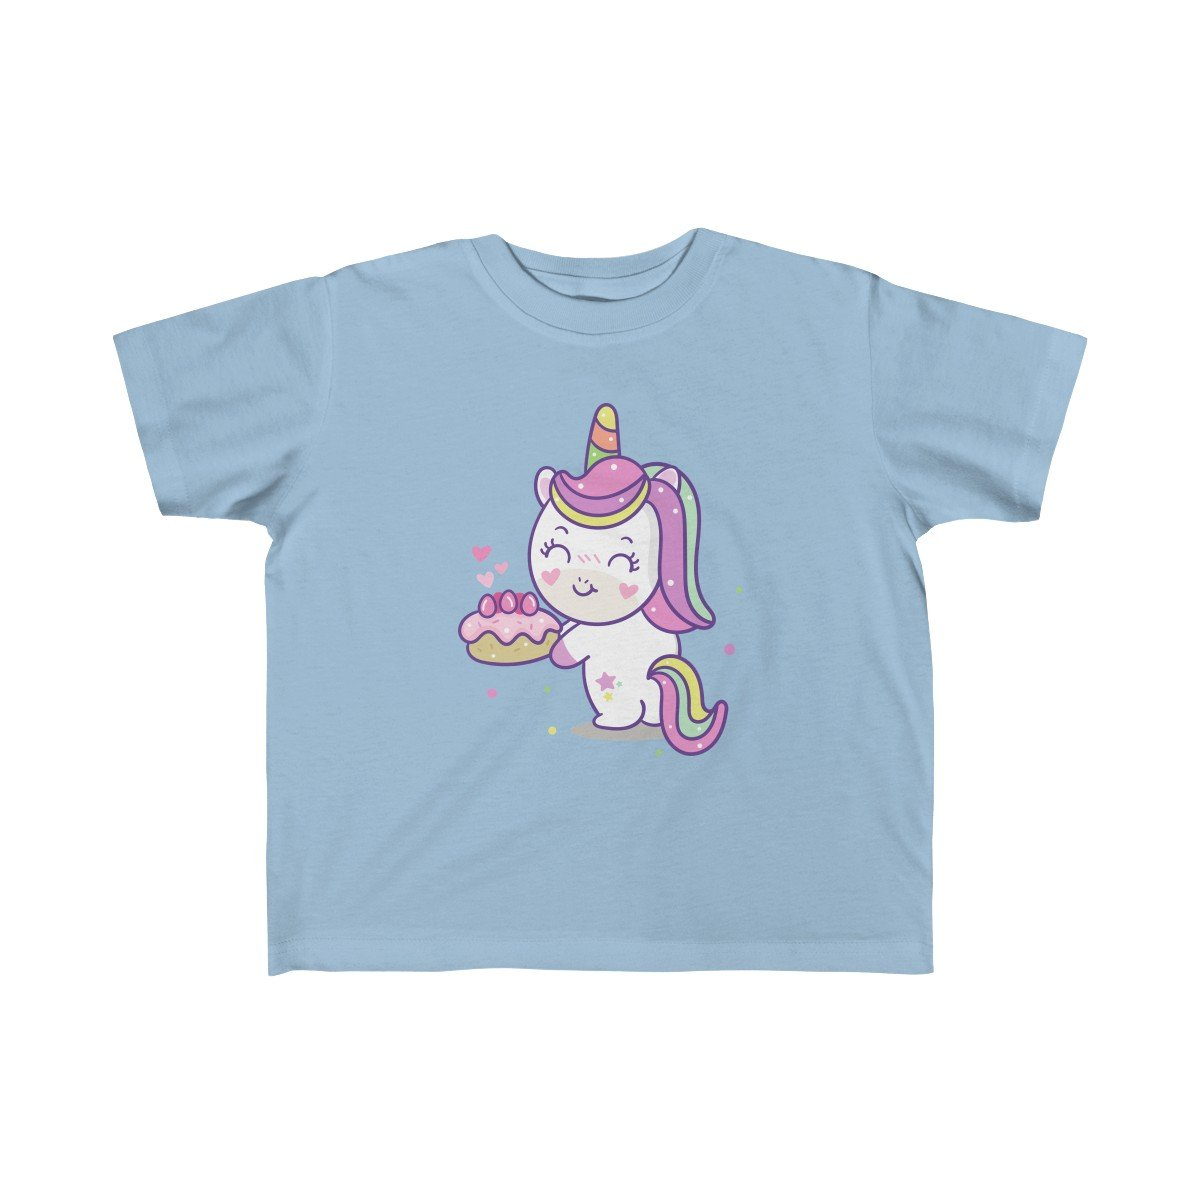 Unicorn Loves Strawberry Shortcake Kid Girls Tee - Baby Blue Product